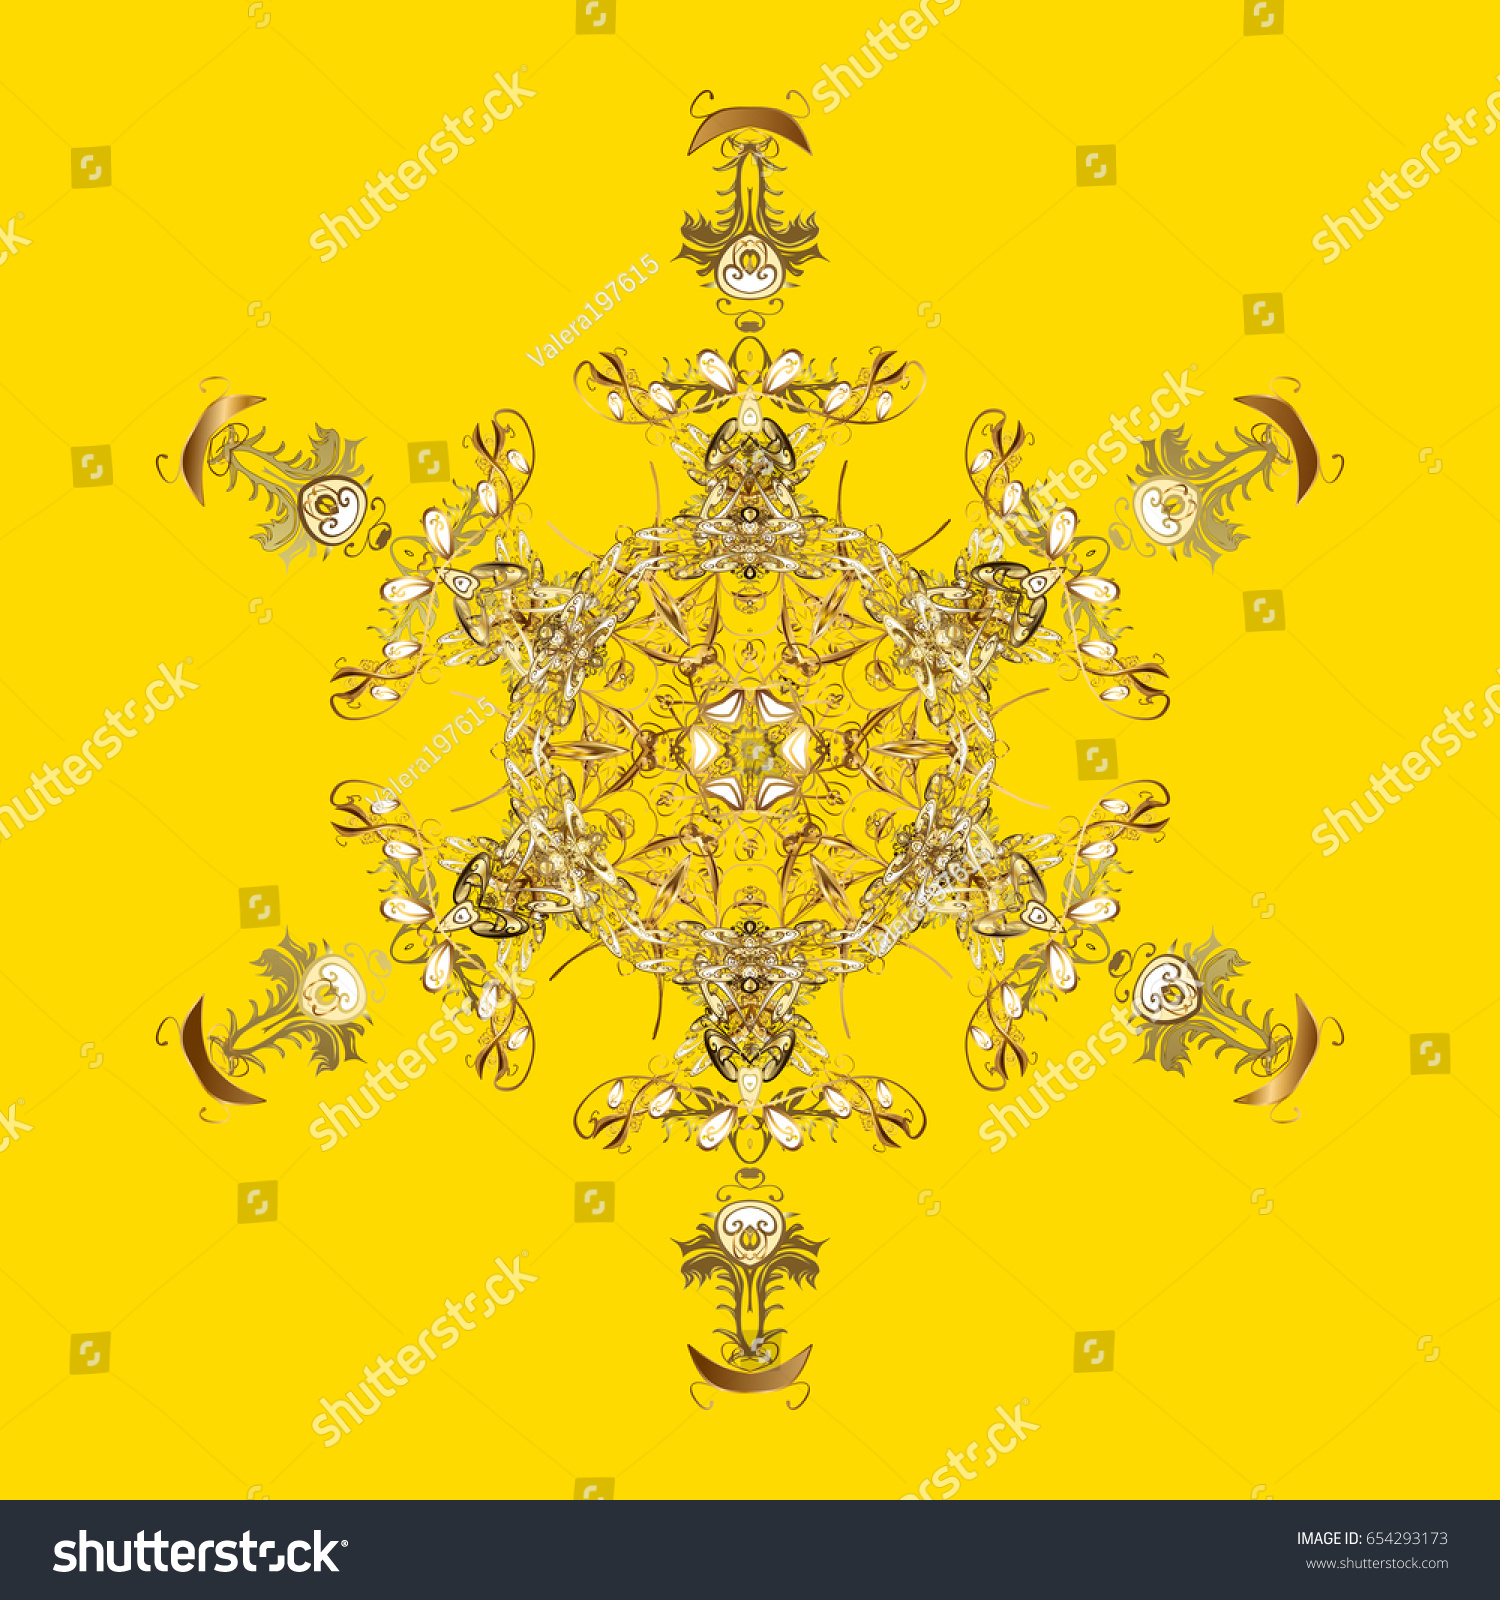 new year 2018 golden snowflake on yellow background cute abstract snowflakes pattern flat snow